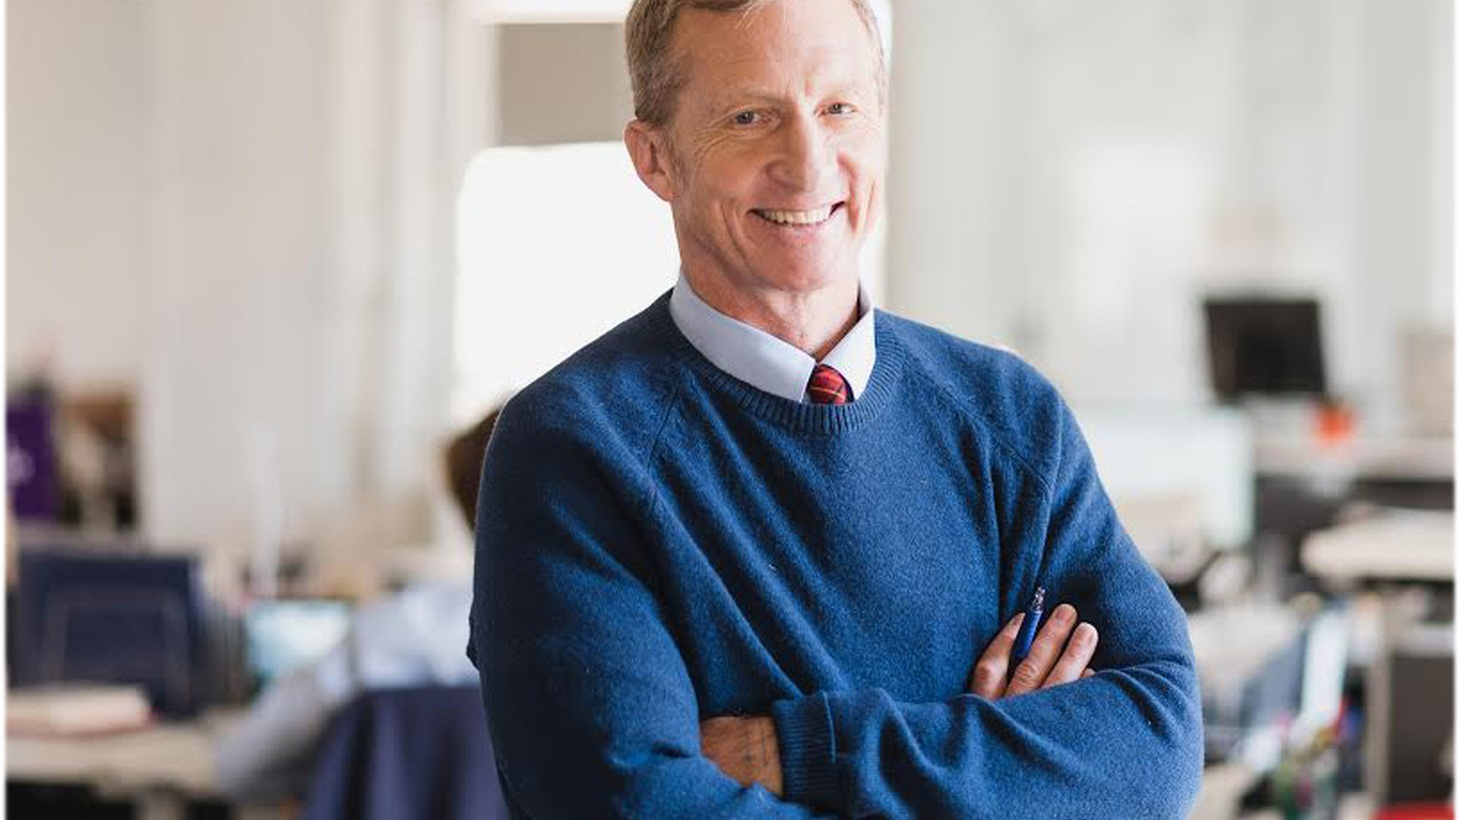 Donald Trump calls out California billionaire Tom Steyer for airing ads calling for his impeachment. Steyer fires back. He's here to talk about his mission to remove the President from office and why it's not a quixotic campaign.